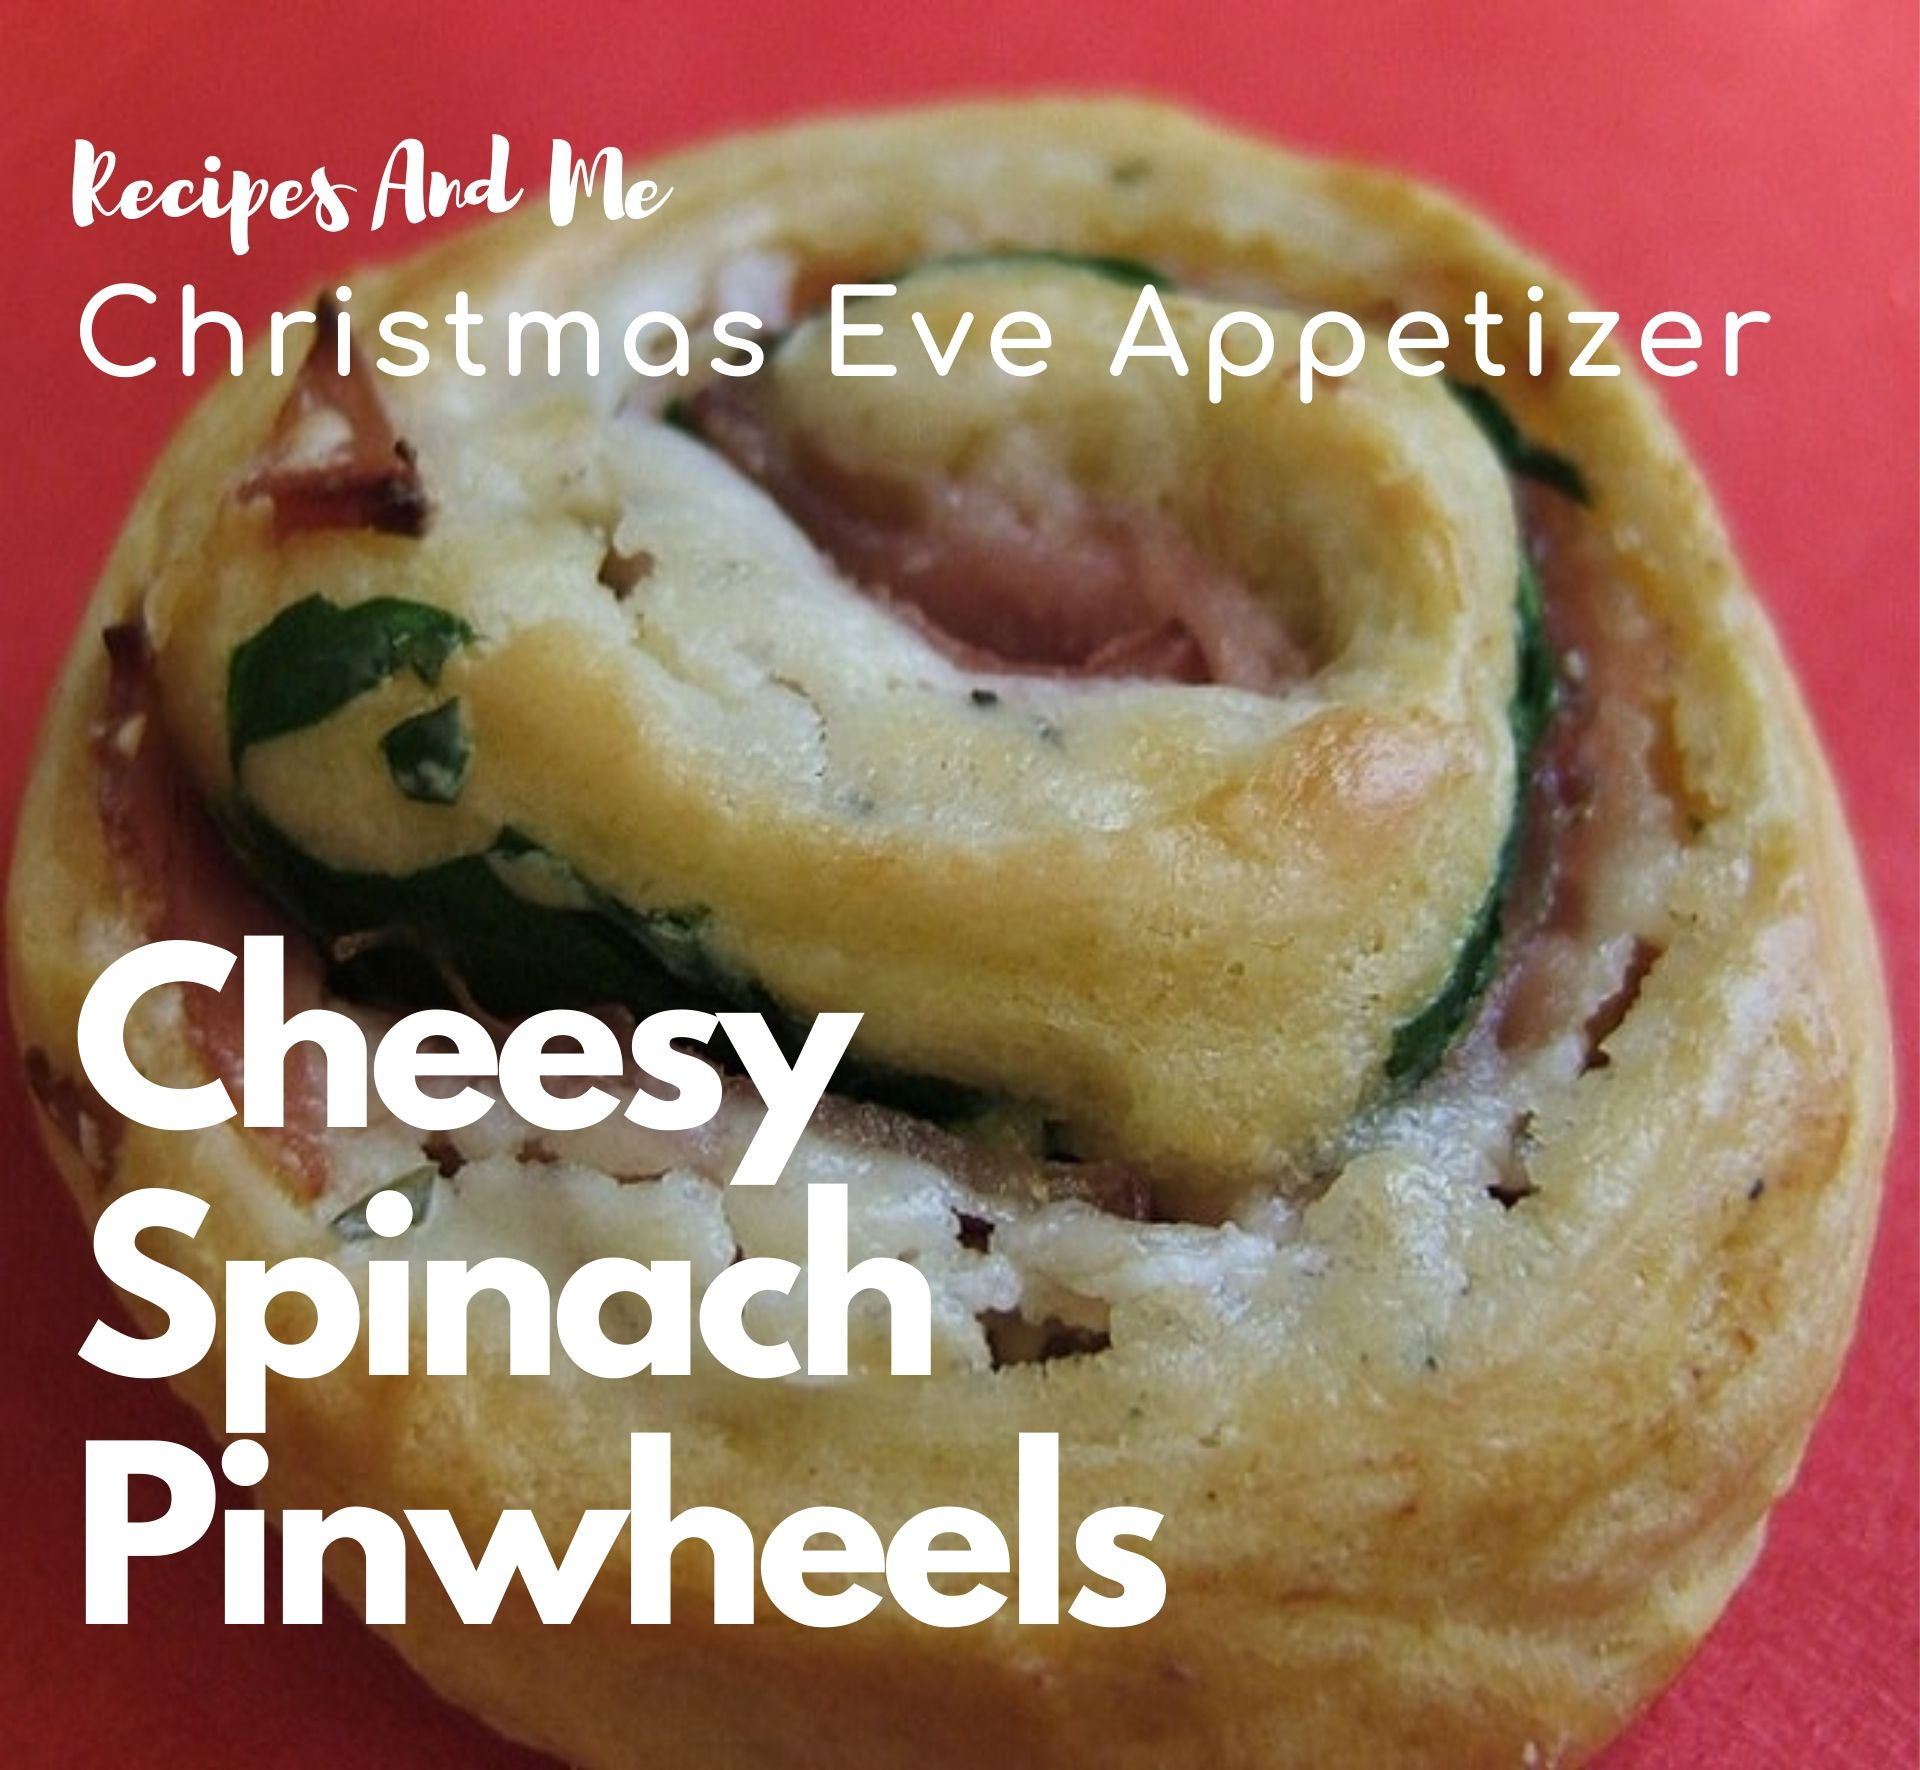 Christmas Eve Appetizer: Cheesy Spinach Pinwheels #recipes #Healthy #Dinner #lunch #Christmas #Appetizers #cooking #simple #mealprep #Easy